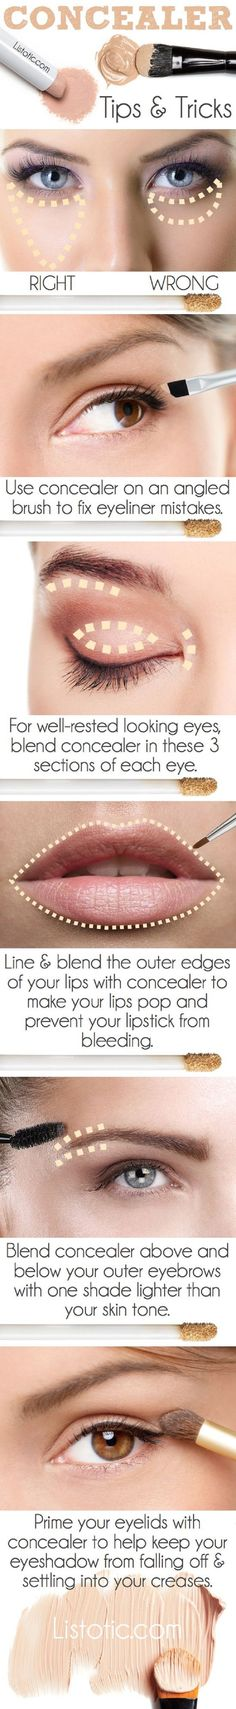 Concealer tips and tricks Pinterest @stylexpert Beauty & Personal Care http://amzn.to/2kaLGnP